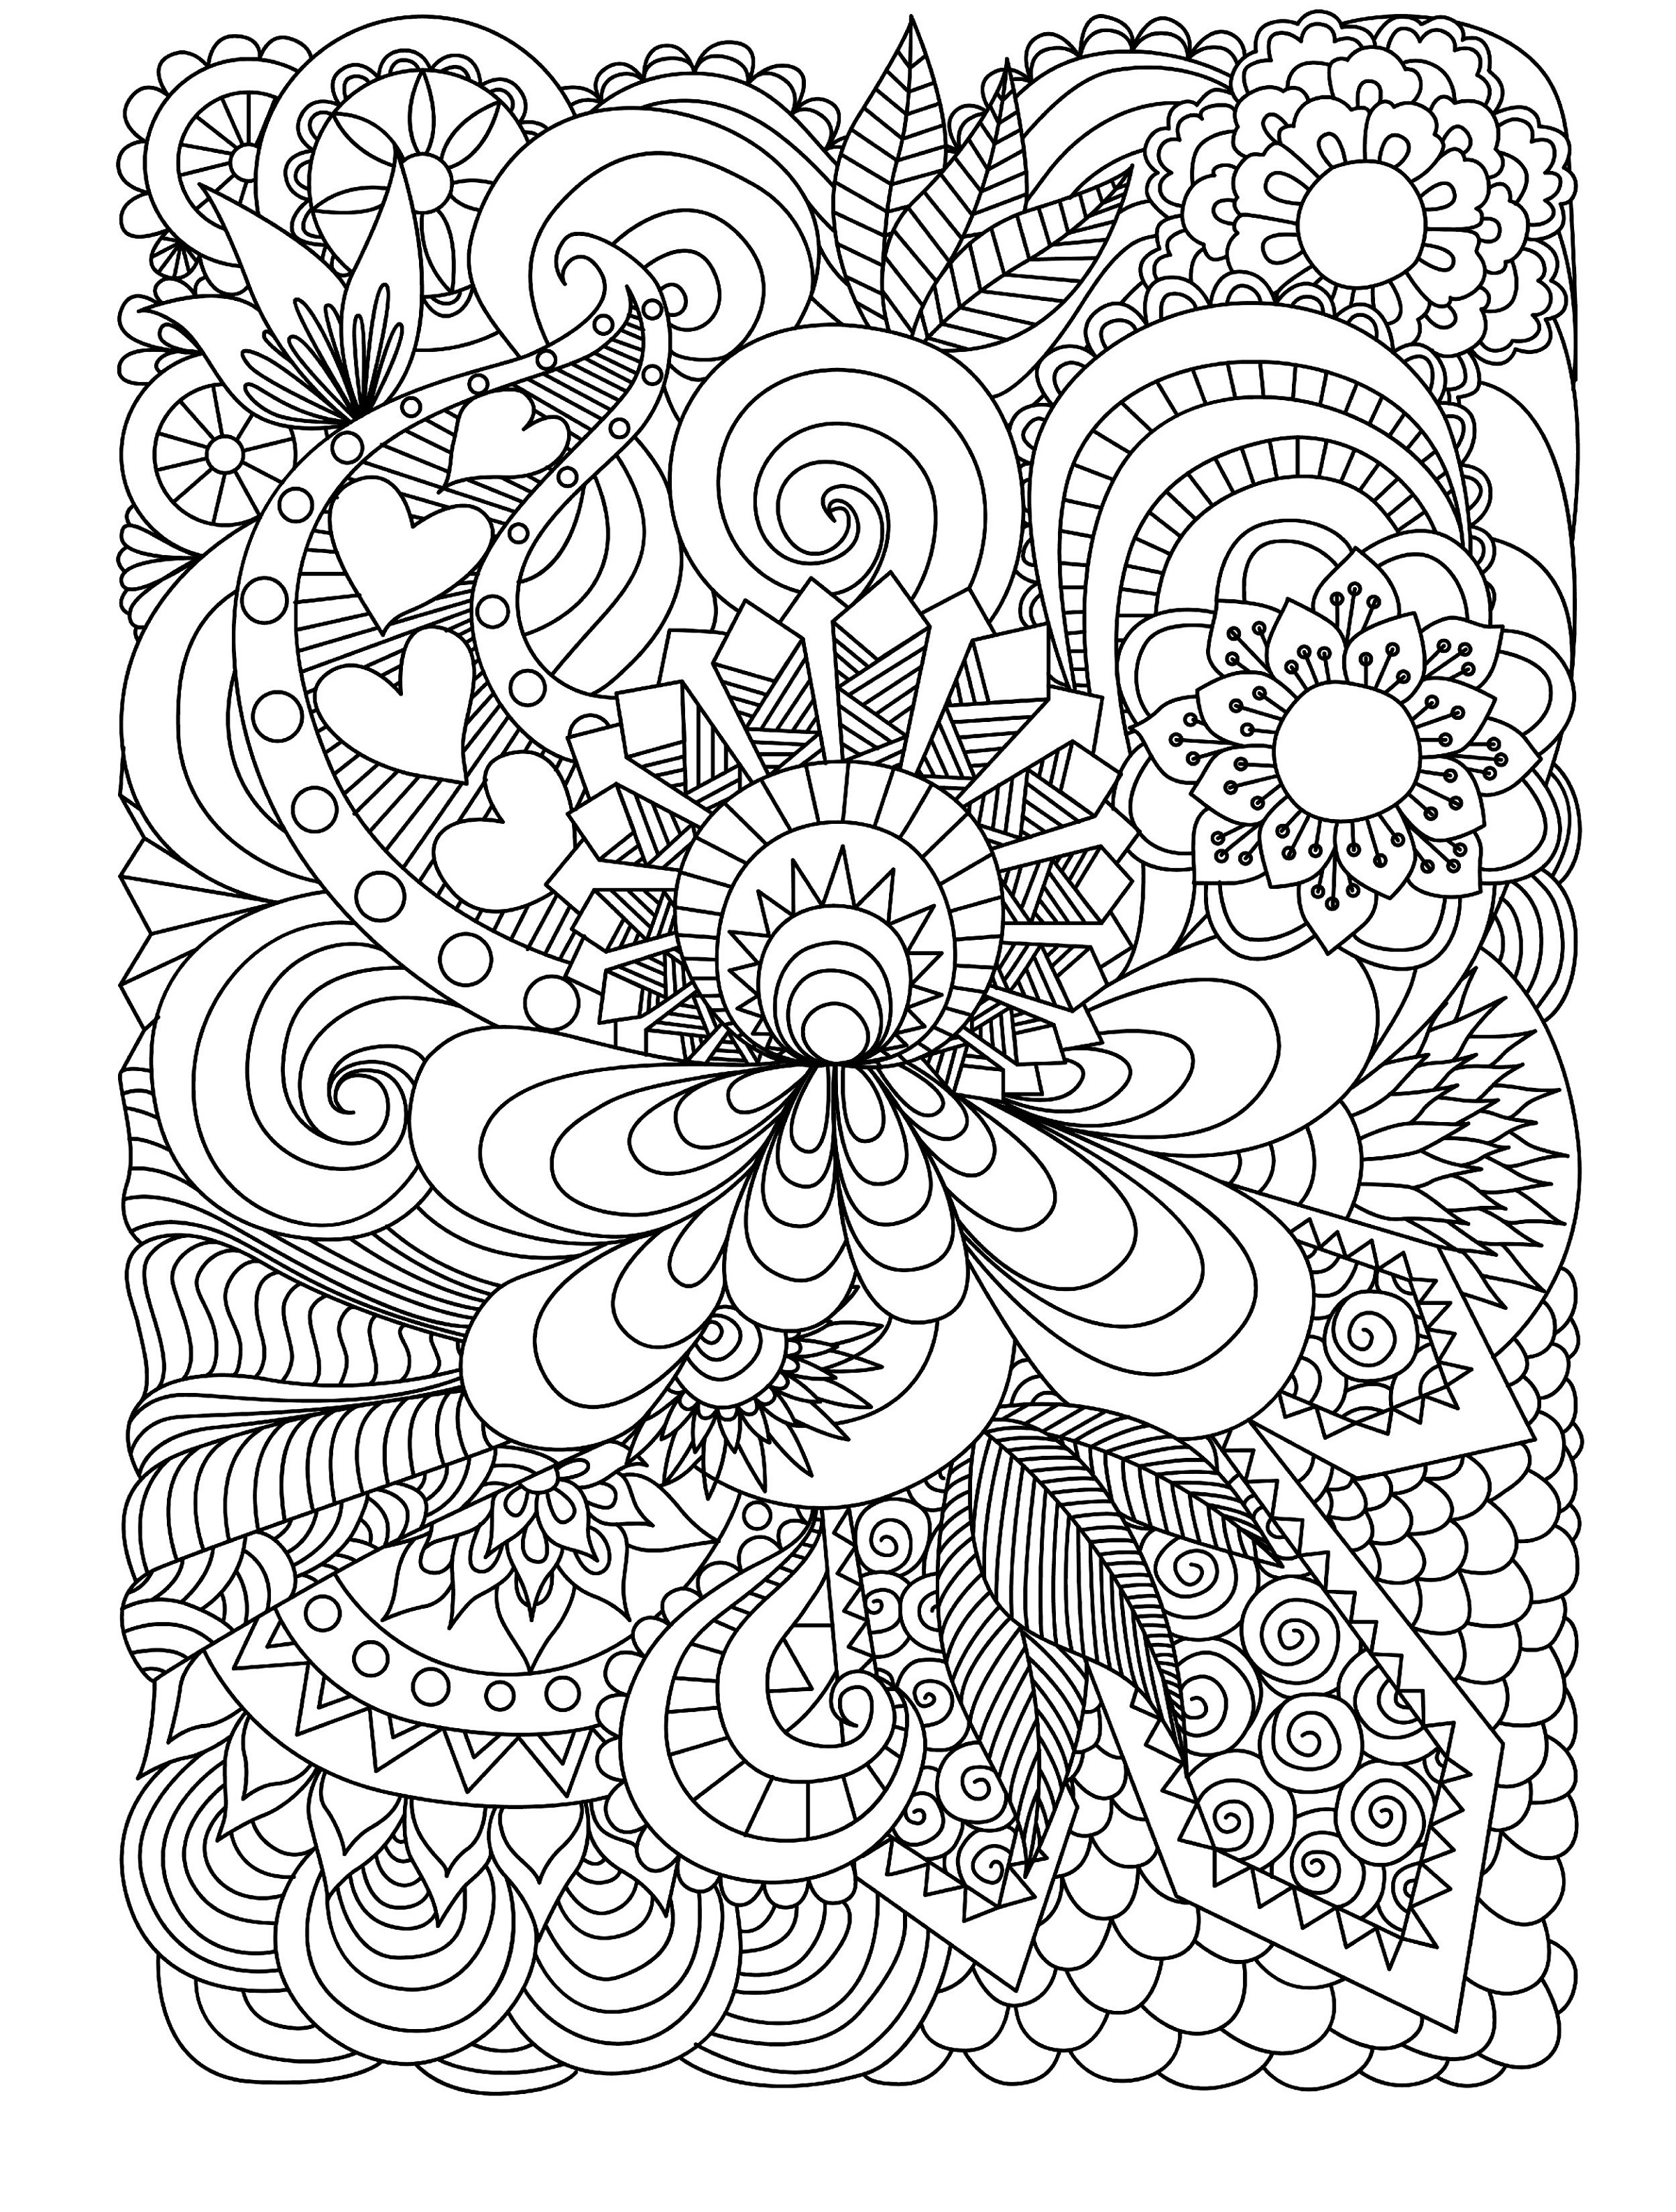 Online-Coloring-for-Adult